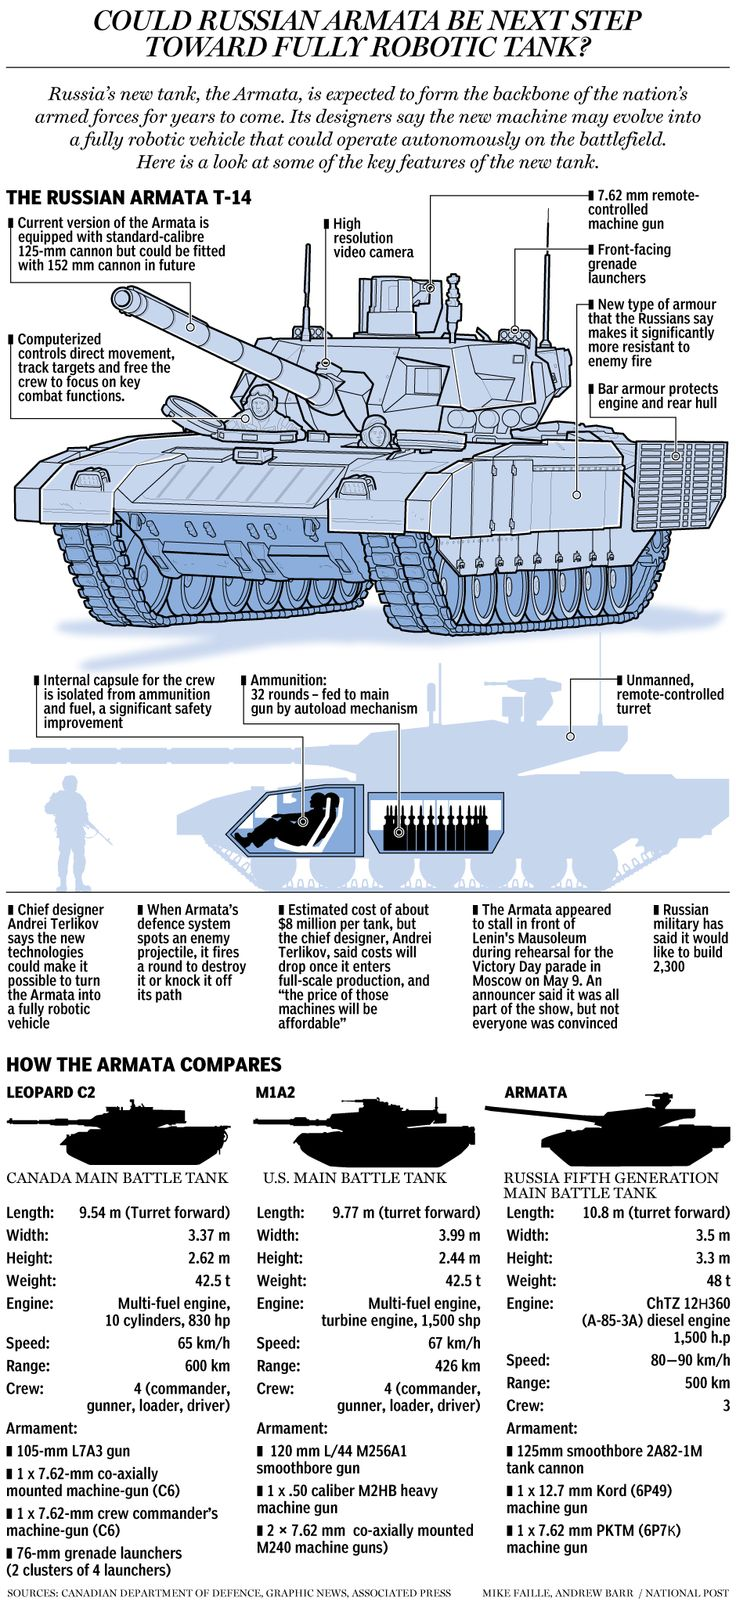 How Russia's new — and possibly fully robotic — Armata tanks measure up